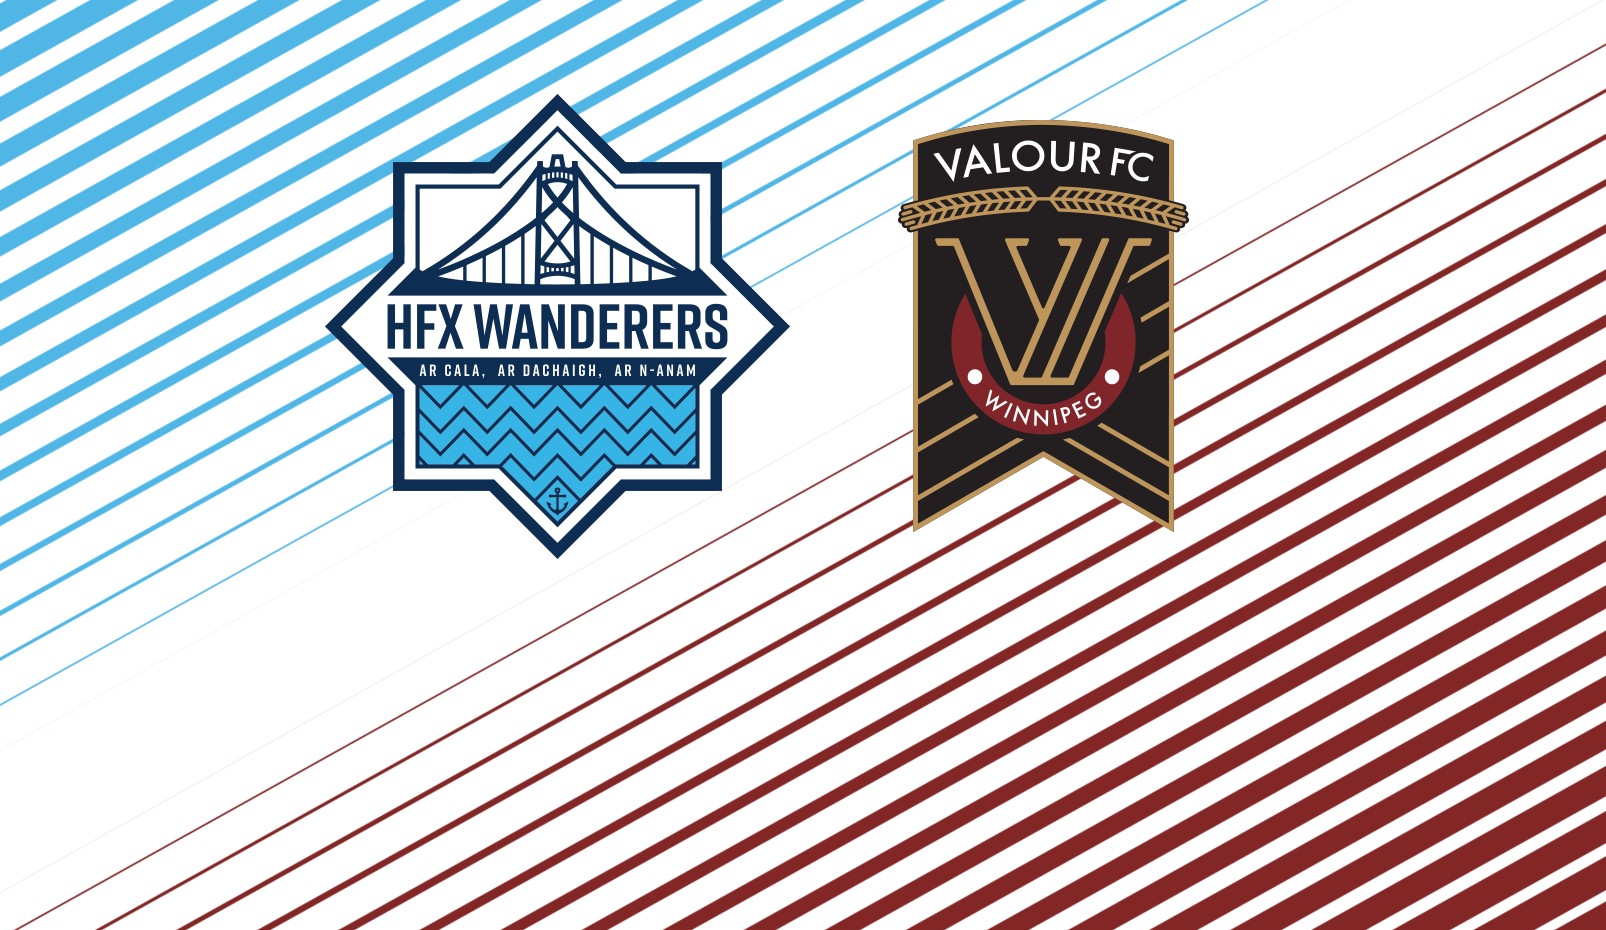 PREVIEW: HFX Wanderers FC vs. Valour FC - Match #77